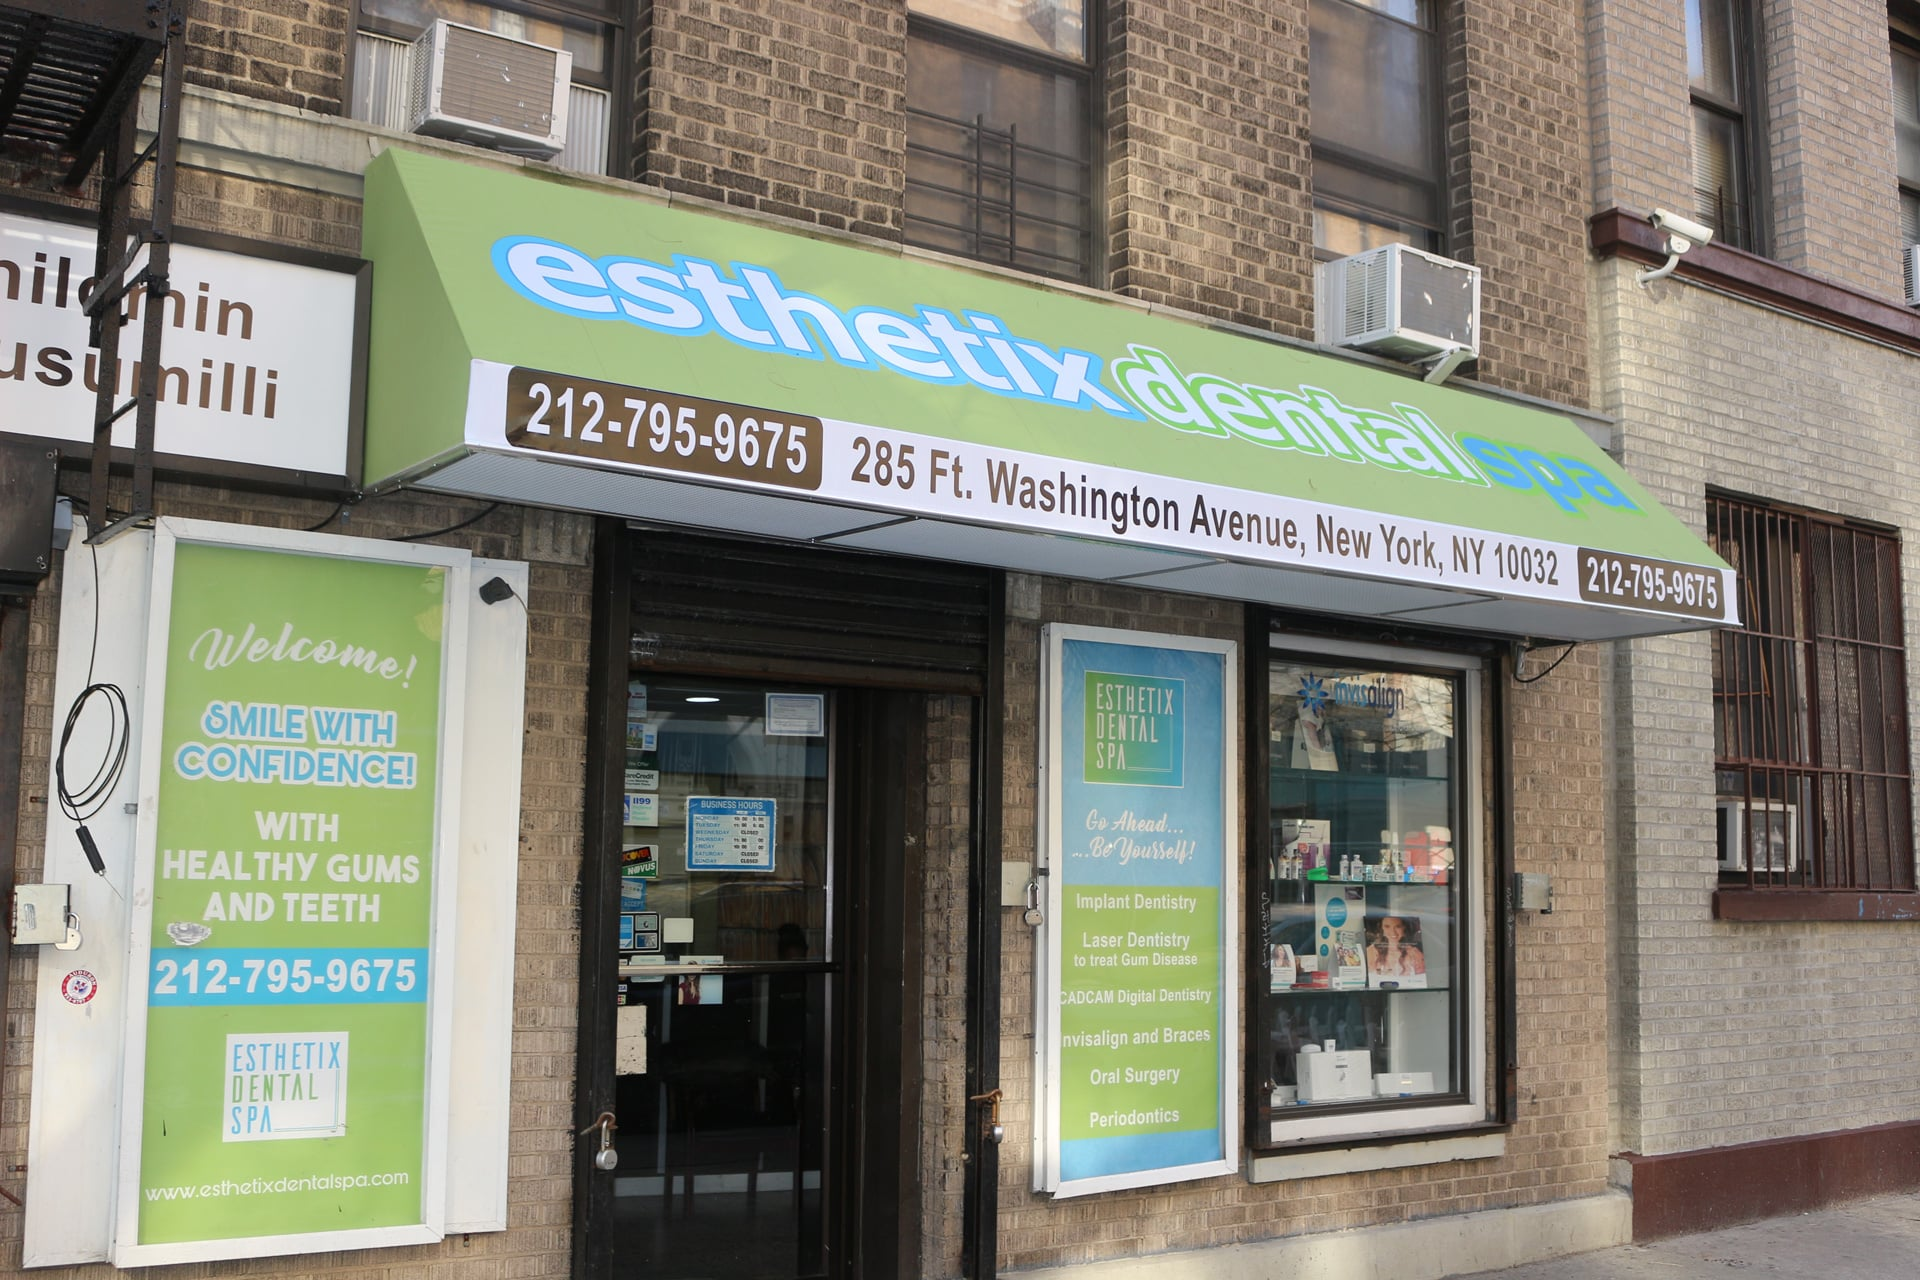 Esthetix Dental Spa, visit us in NYC